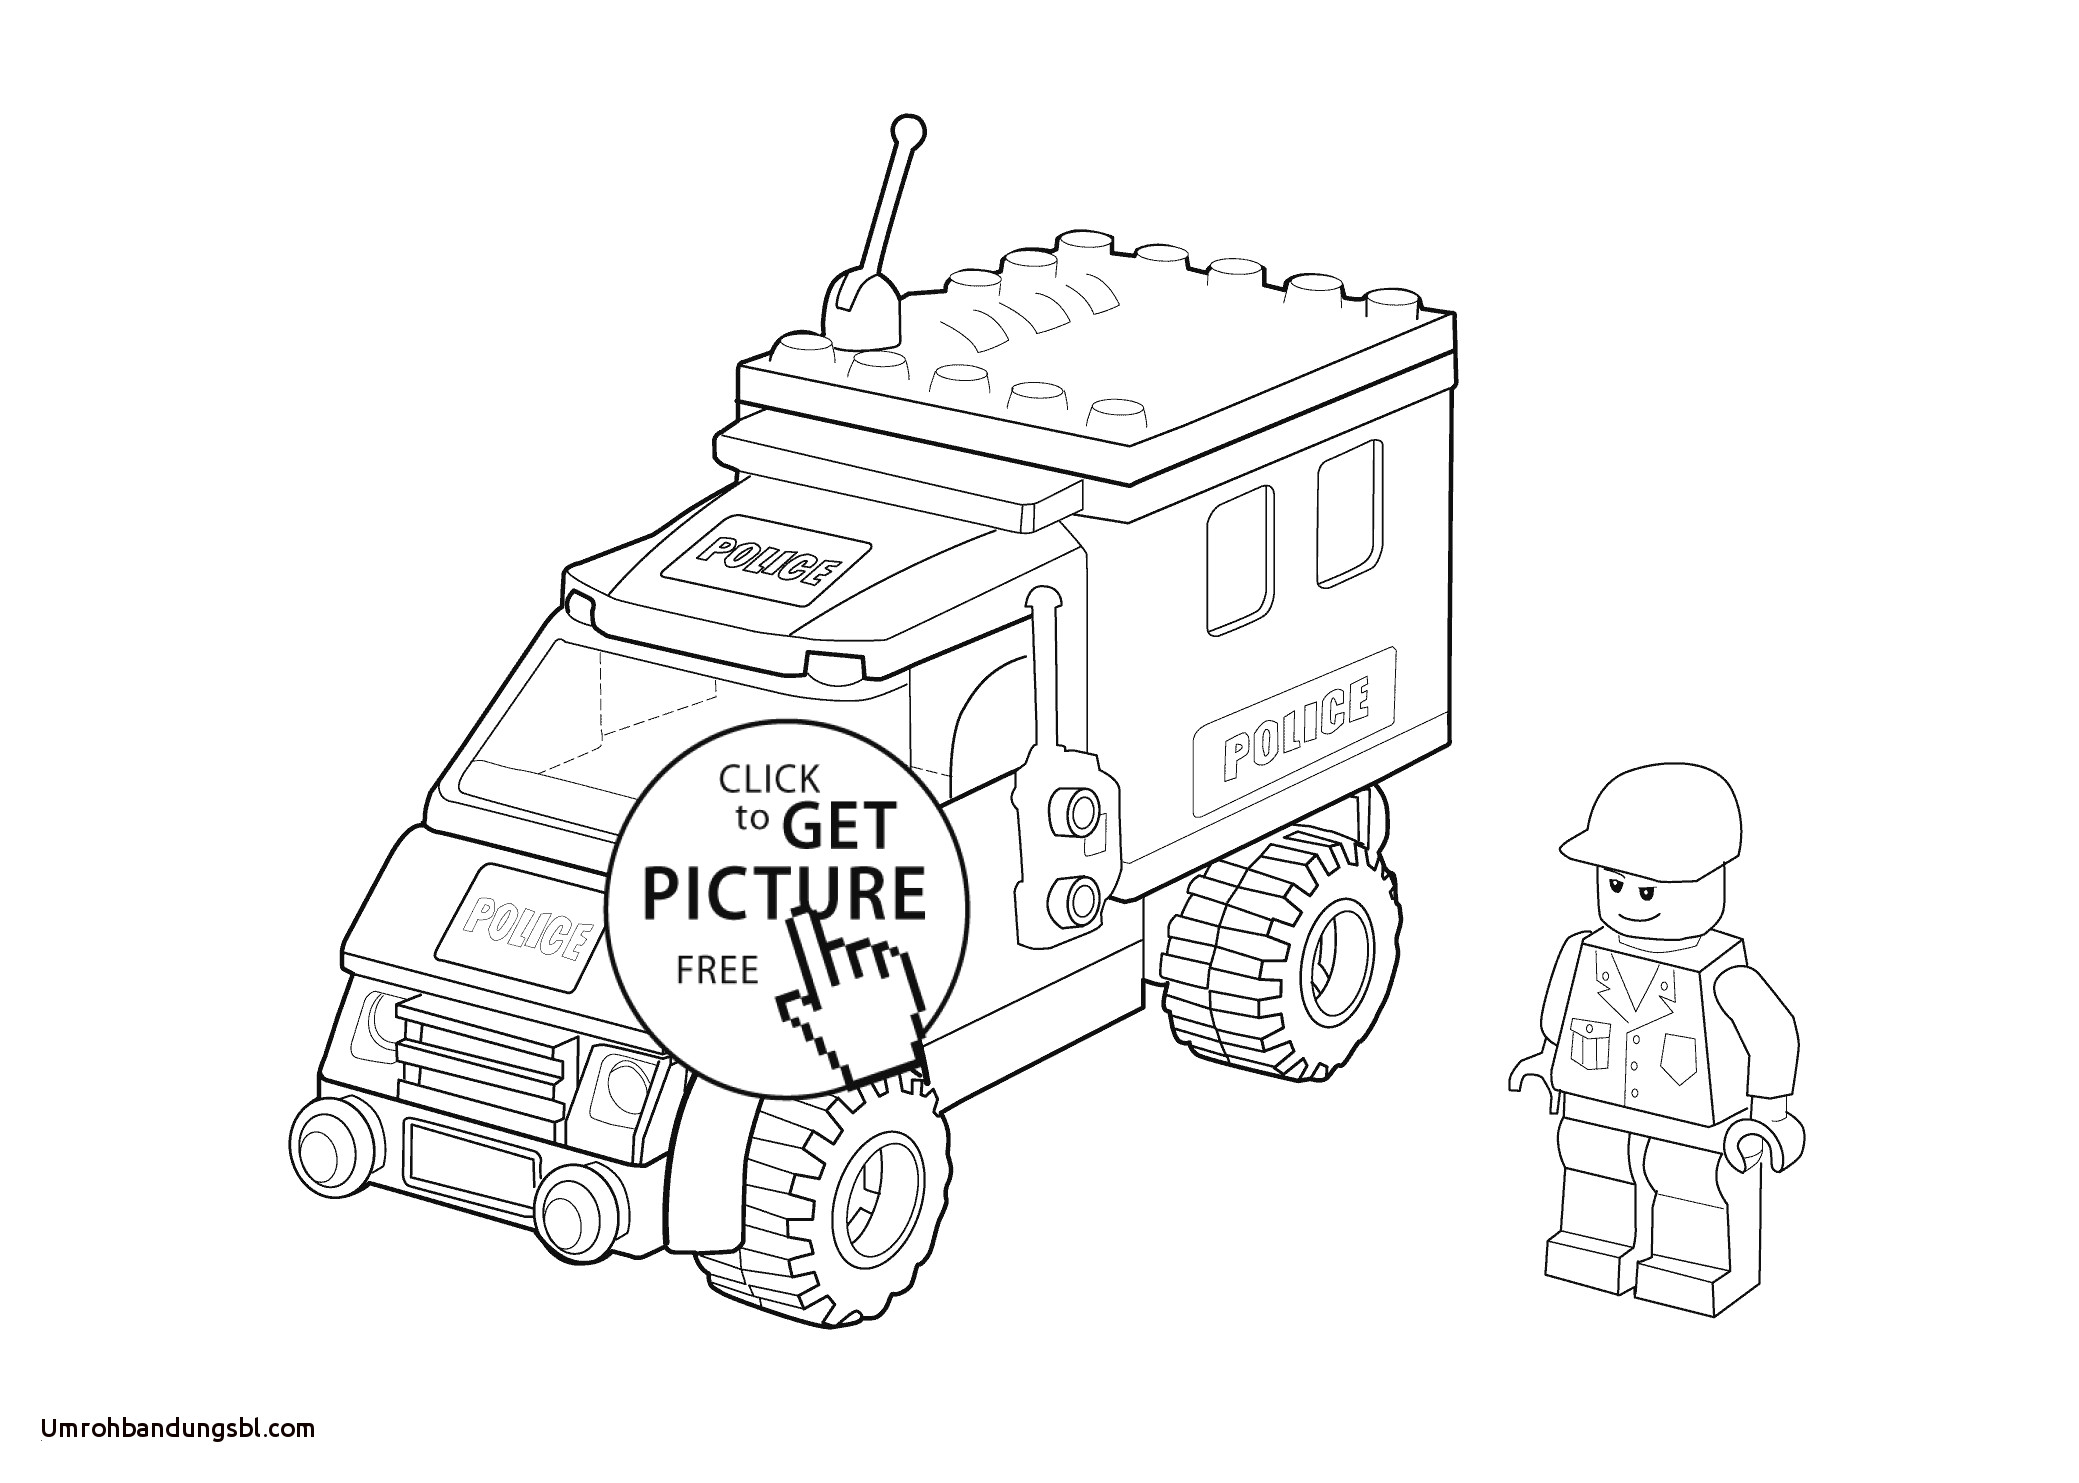 lego police coloring pages Collection-Police Car Coloring Page Fresh Police Car Coloring Pages Fresh Lego Download Coloring Pages 7-f